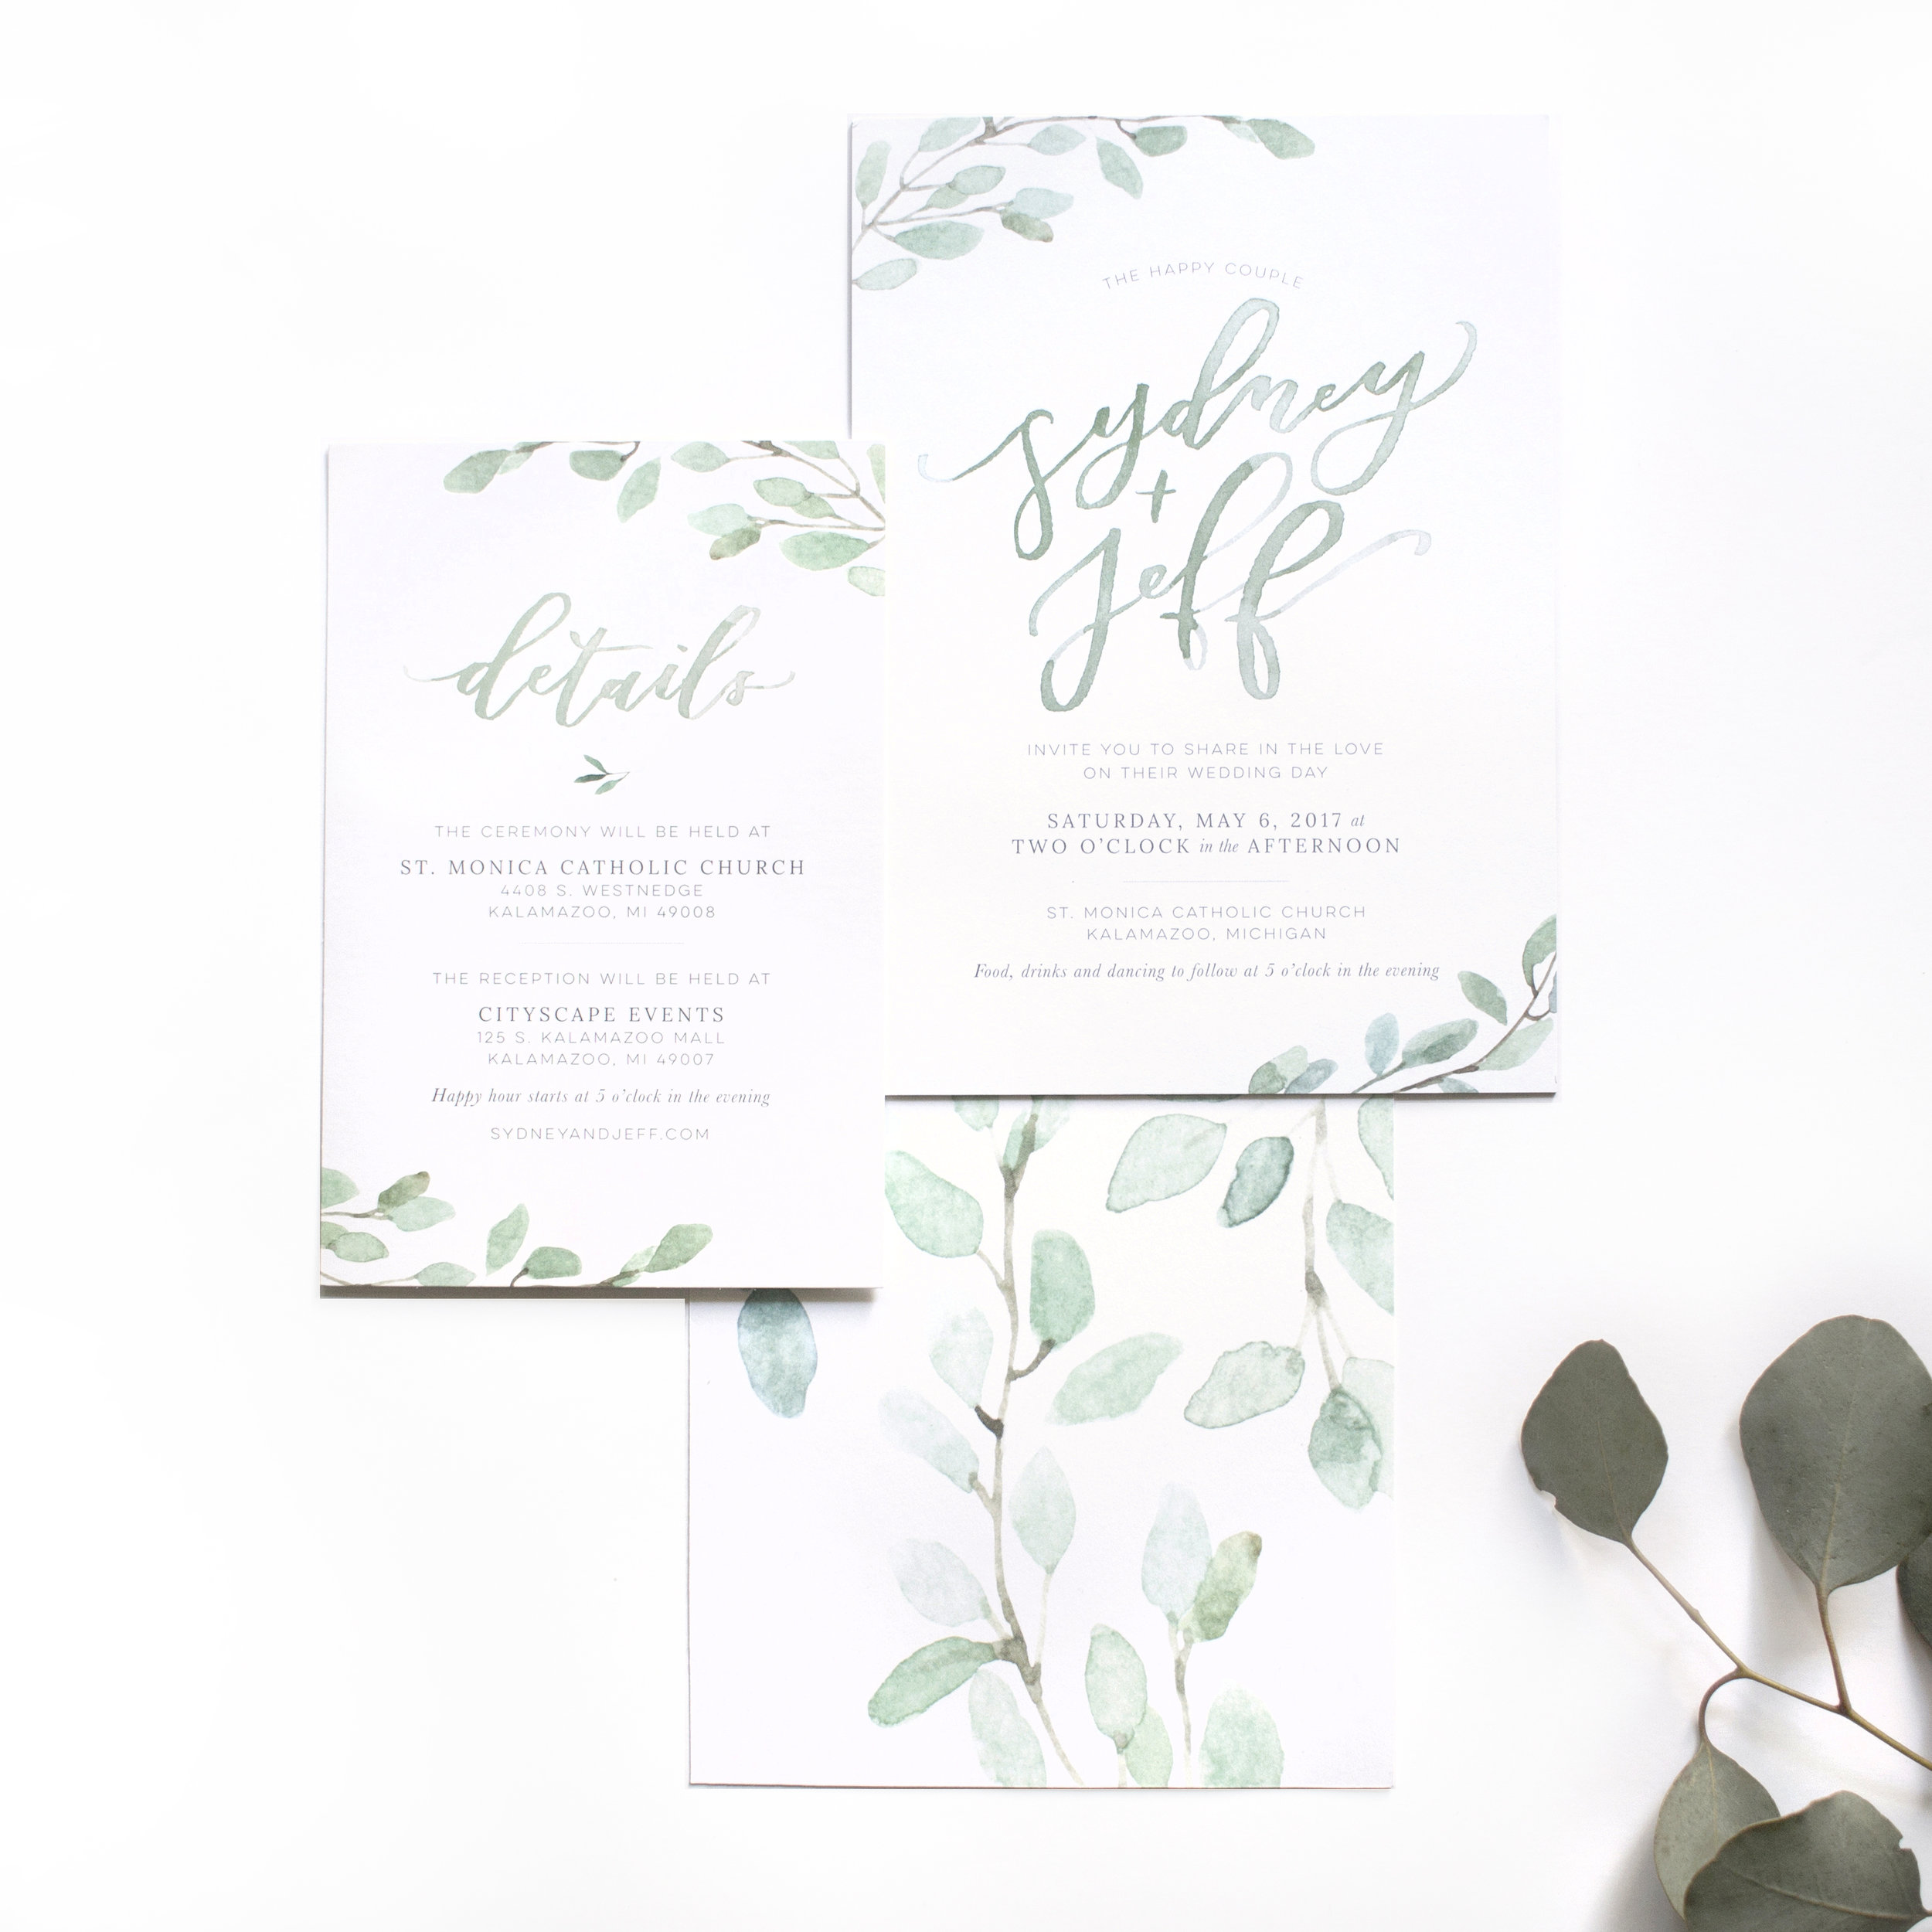 Invitation Suite - Sydney + Jeff